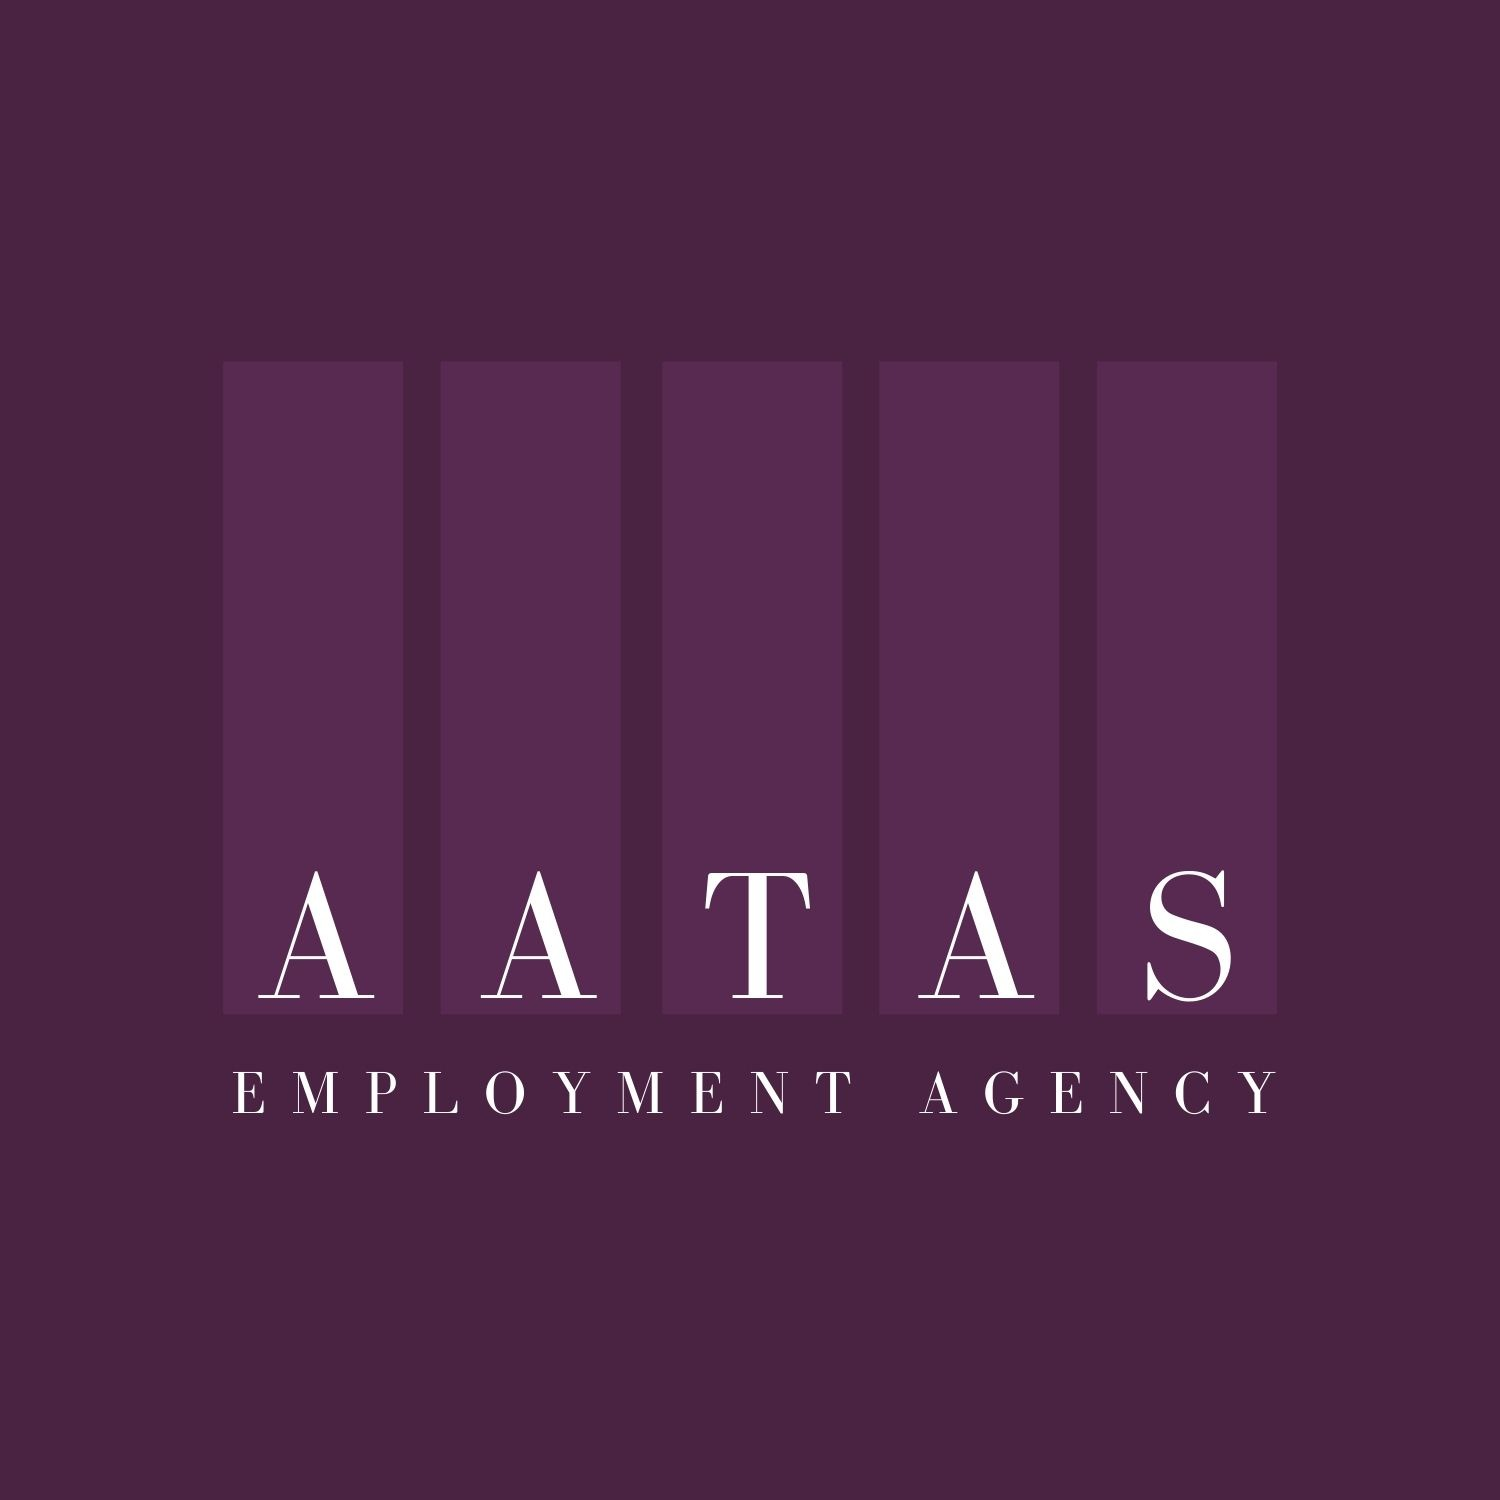 AATAS EMPLOYMENT AGENCY